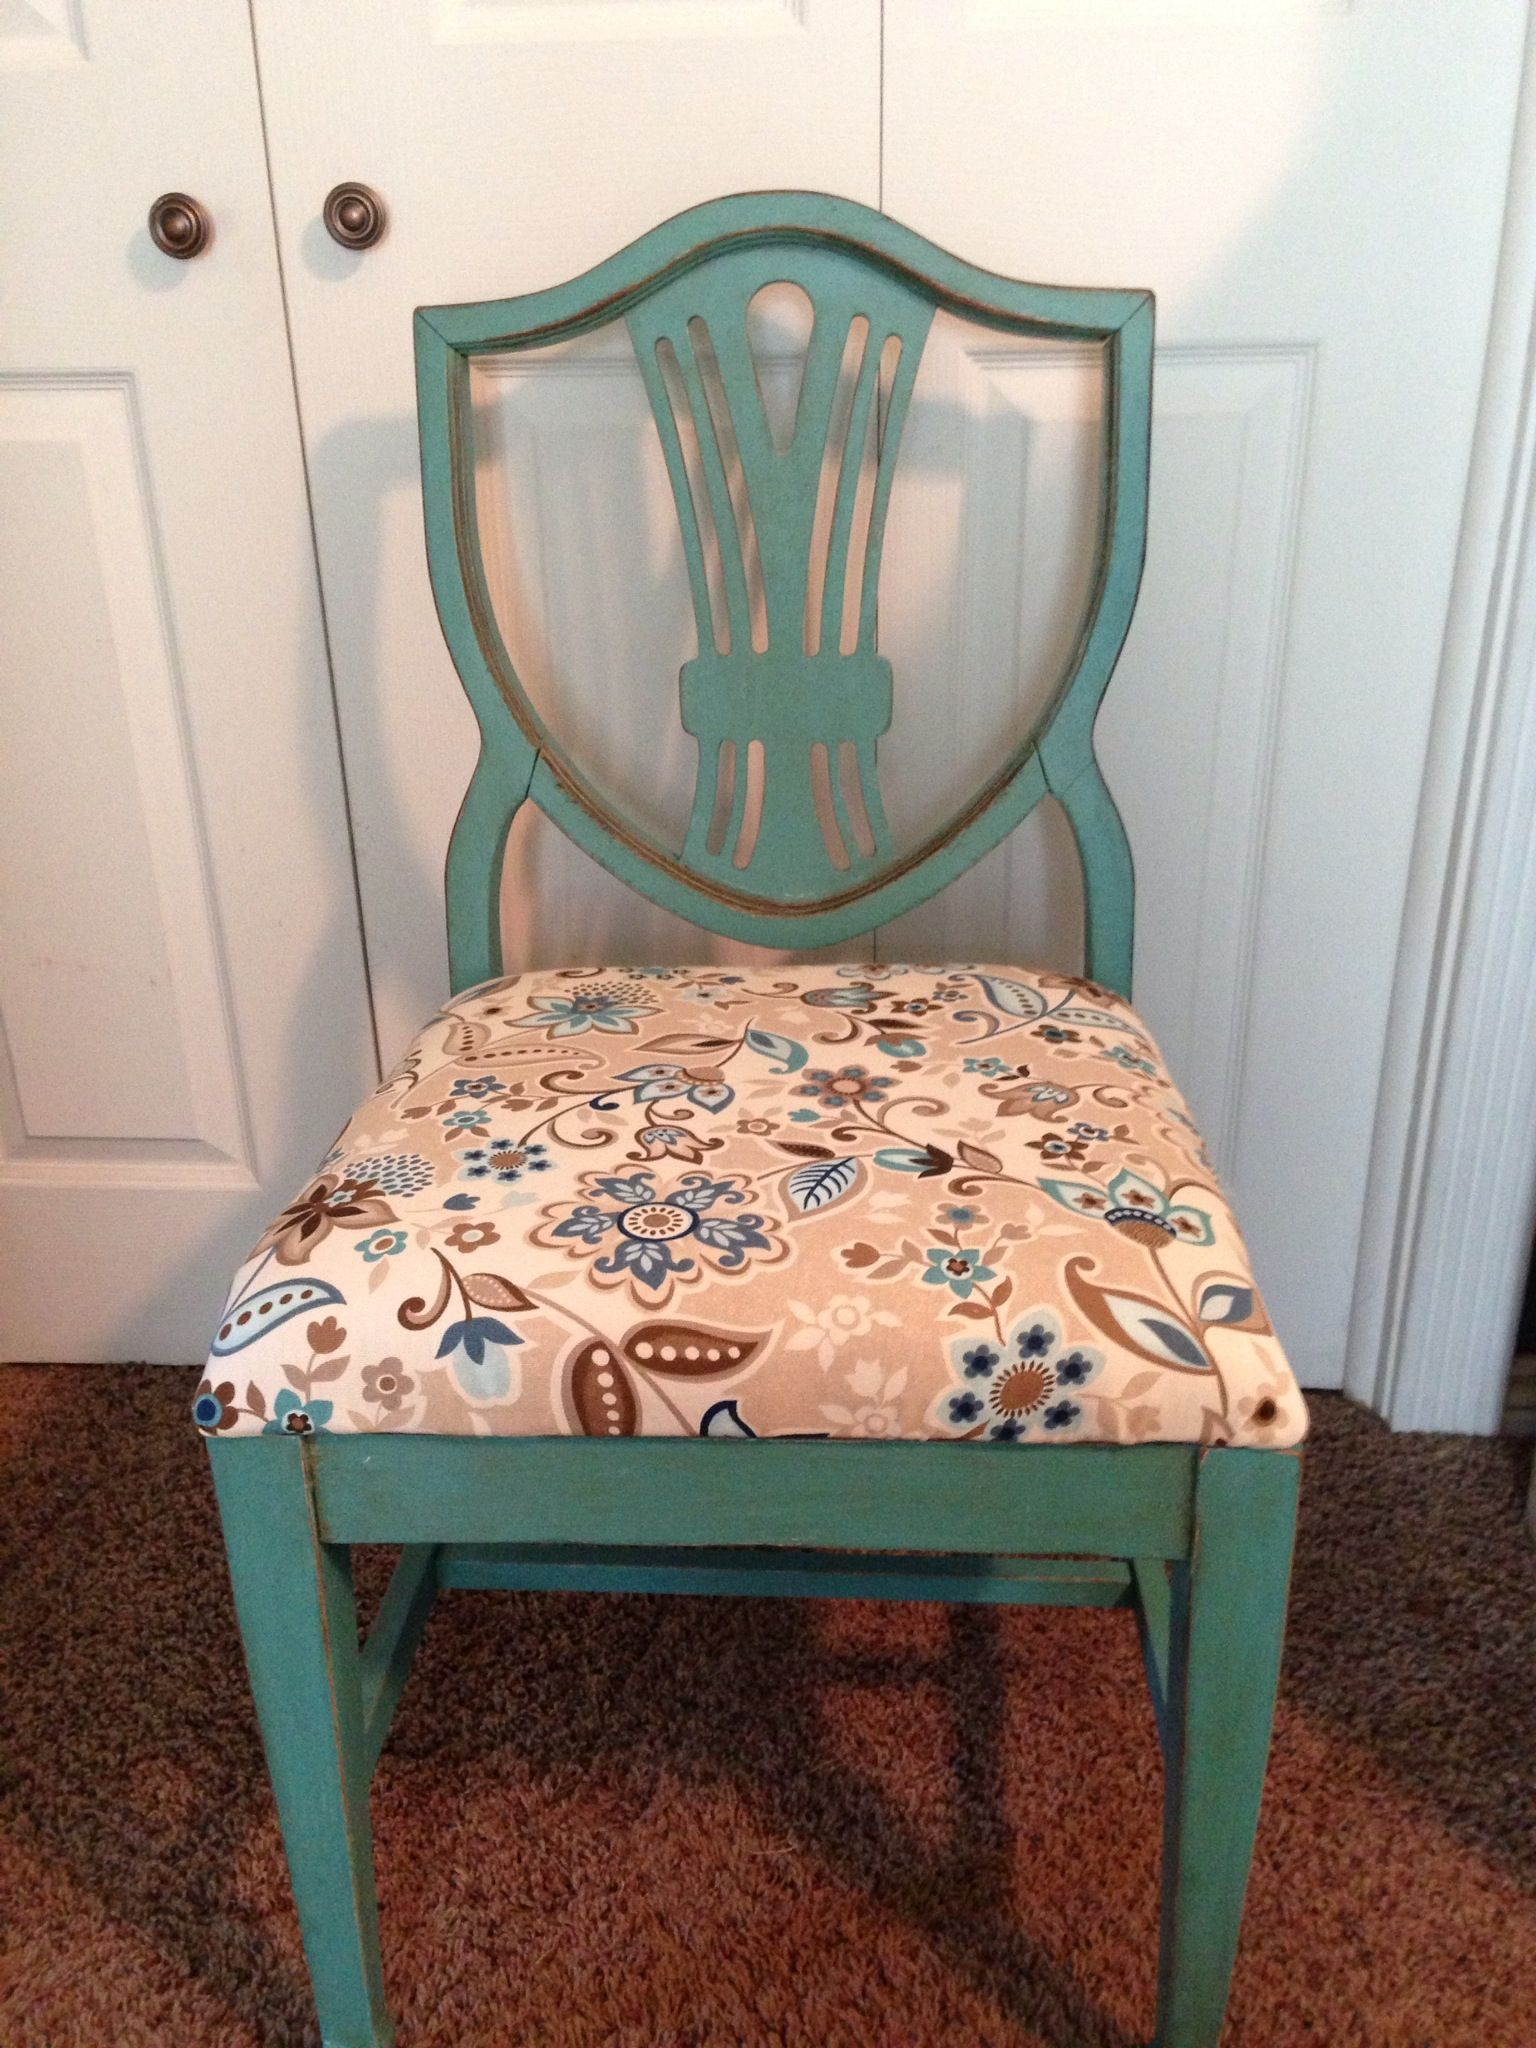 Refurbished Chairs Refurbished Chair Teal With Brown Glaze Refurbished Chairs